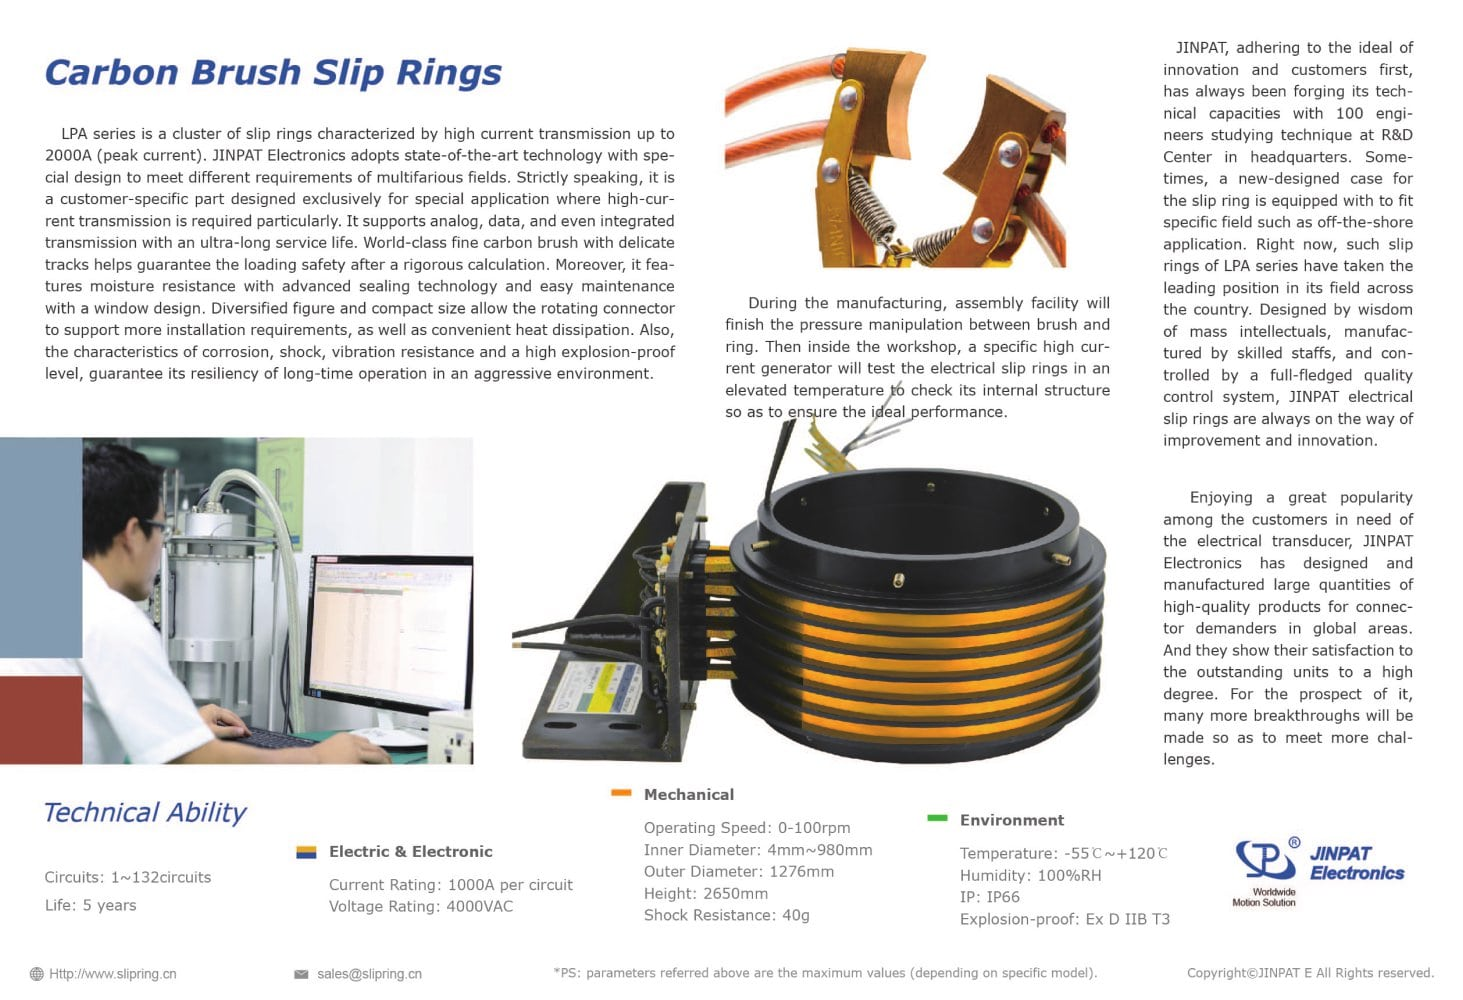 Jinpat Carbon Brush Slip Ring Electronics Co Ltd Pdf Everything Electrical How To Test Circuits Like A Pro Part 1 Pages